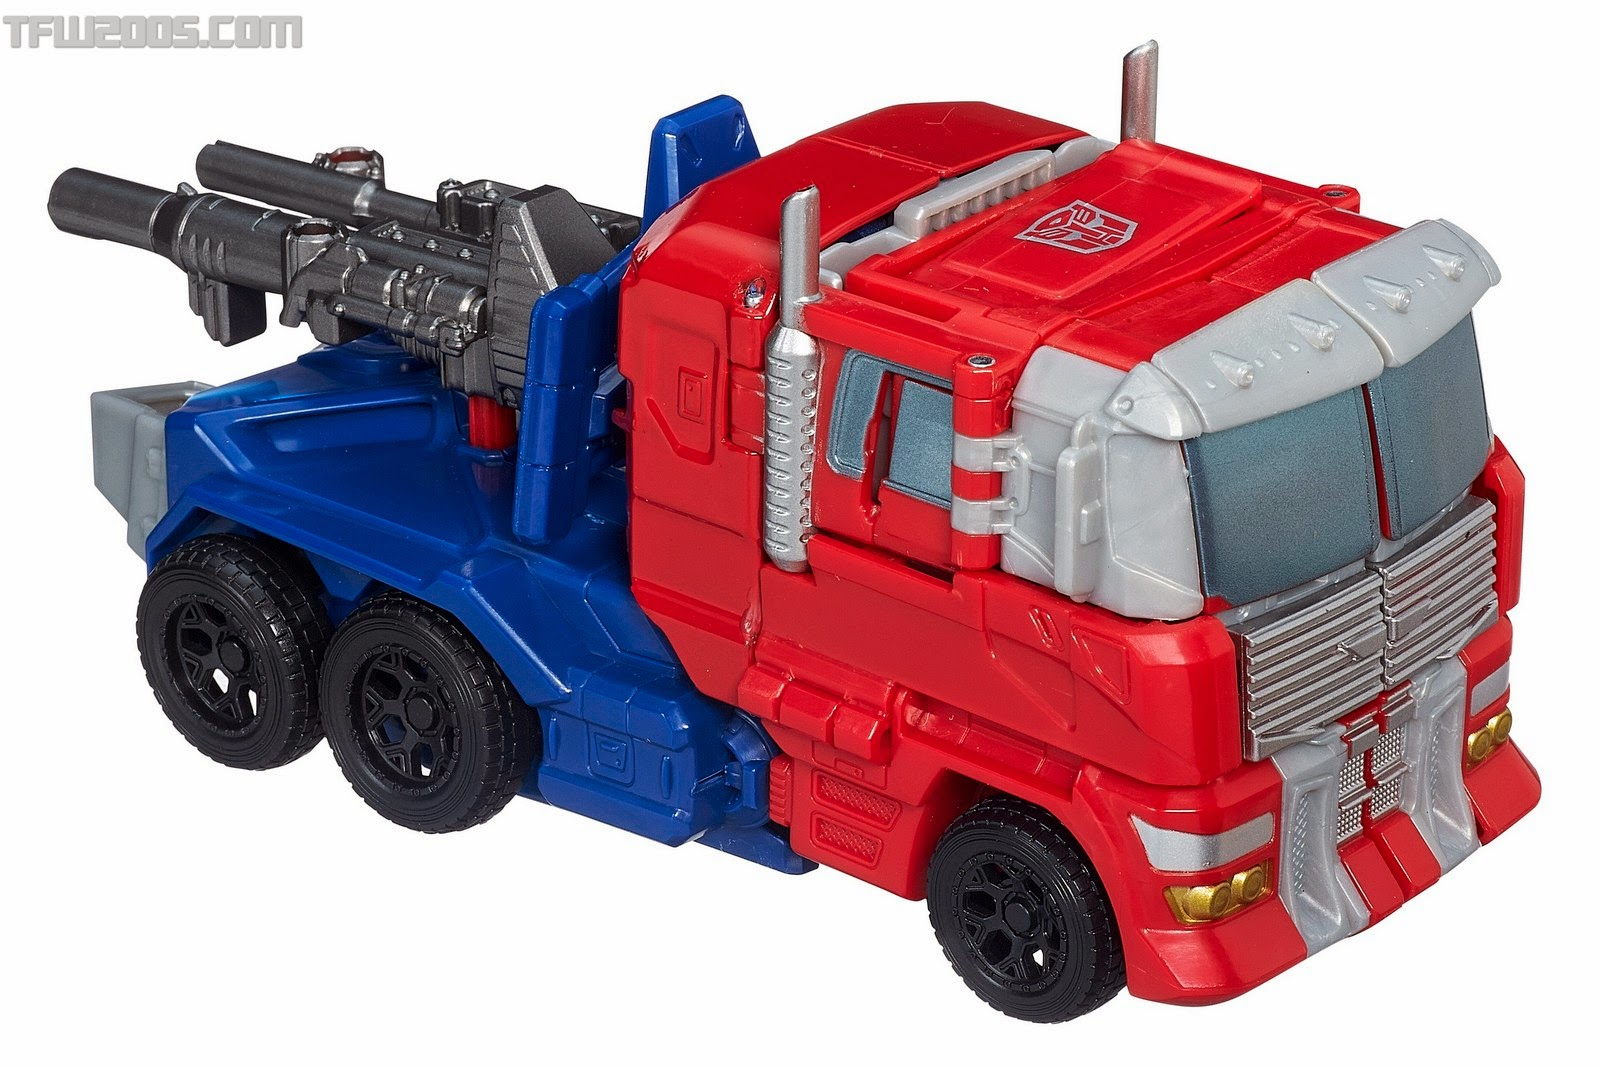 Hasbro - Transformers - The Combiner Wars - Optimus Prime